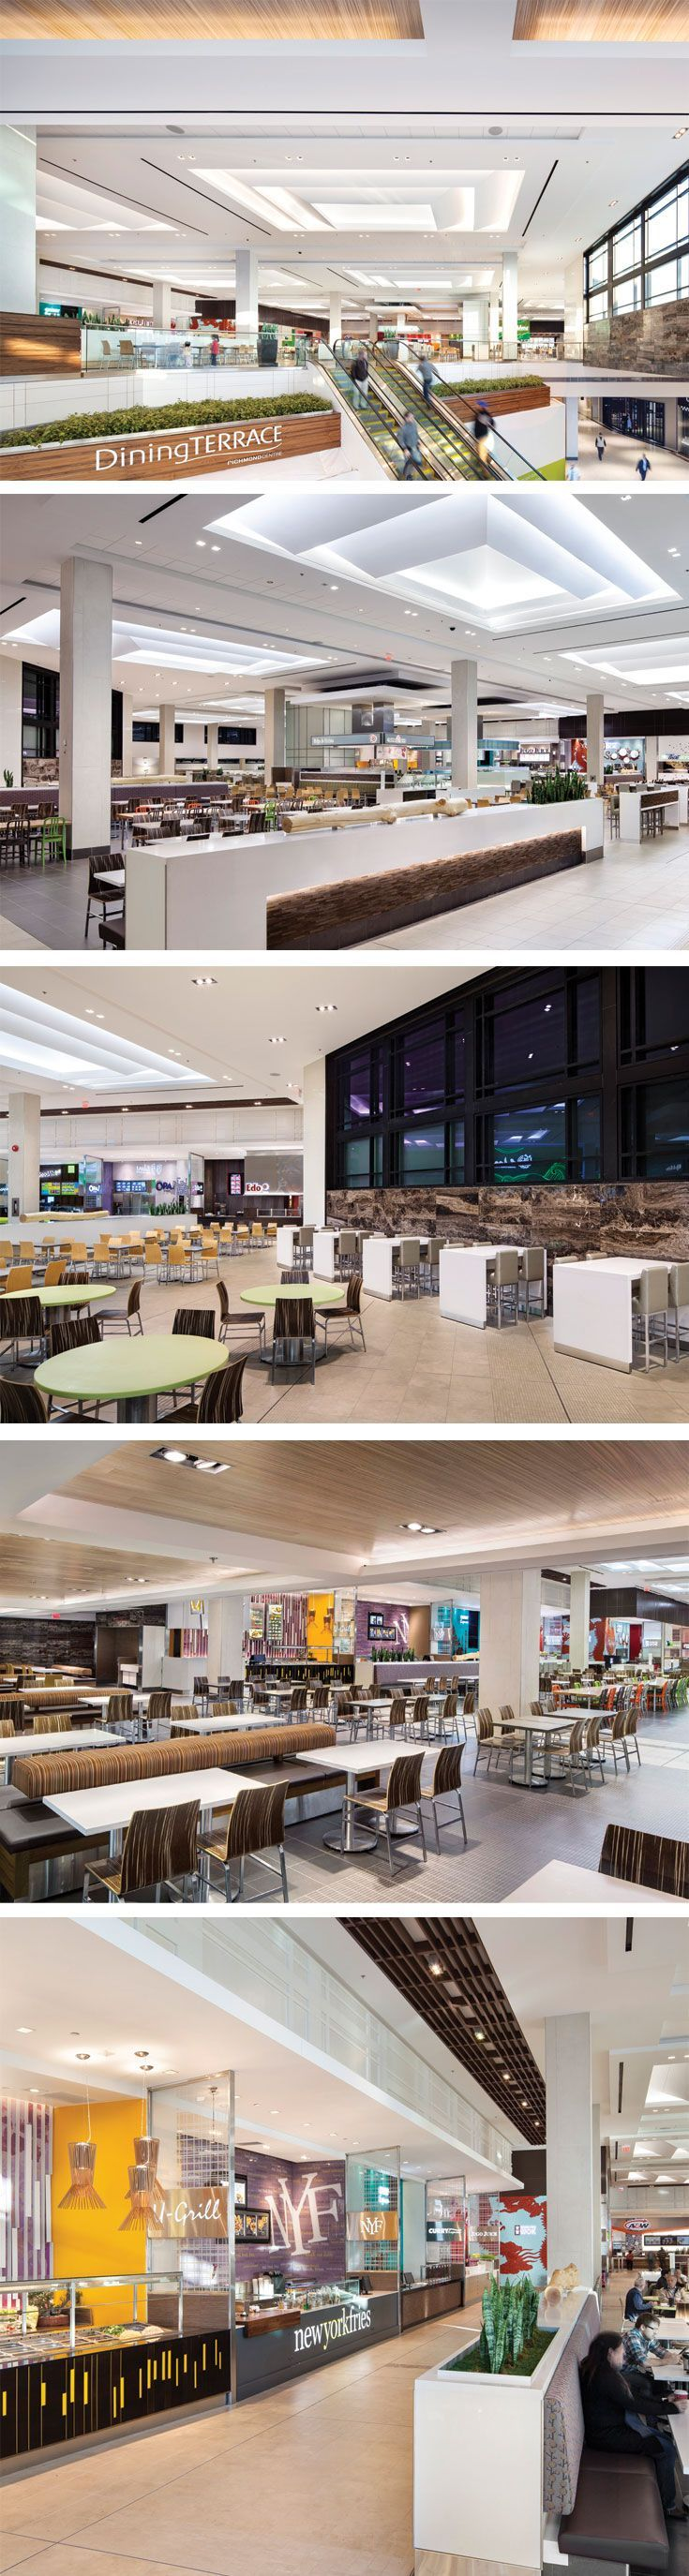 17 best images about food court on pinterest shopping for 18 richmond terrace